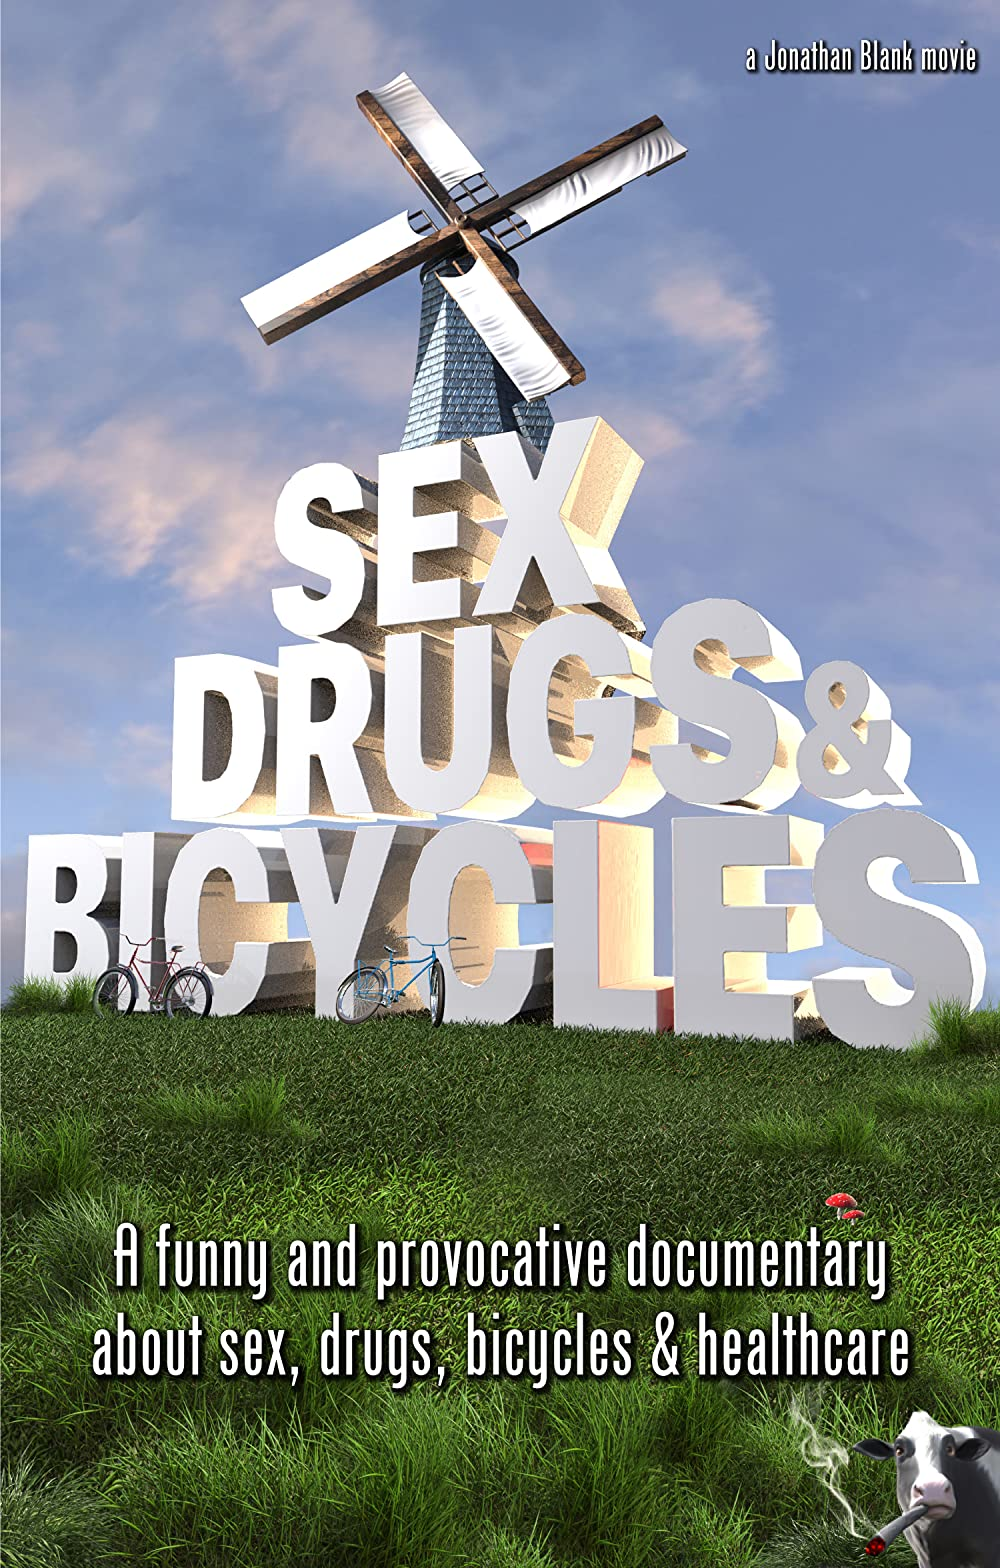 Watch Sex, Drugs & Bicycles Online